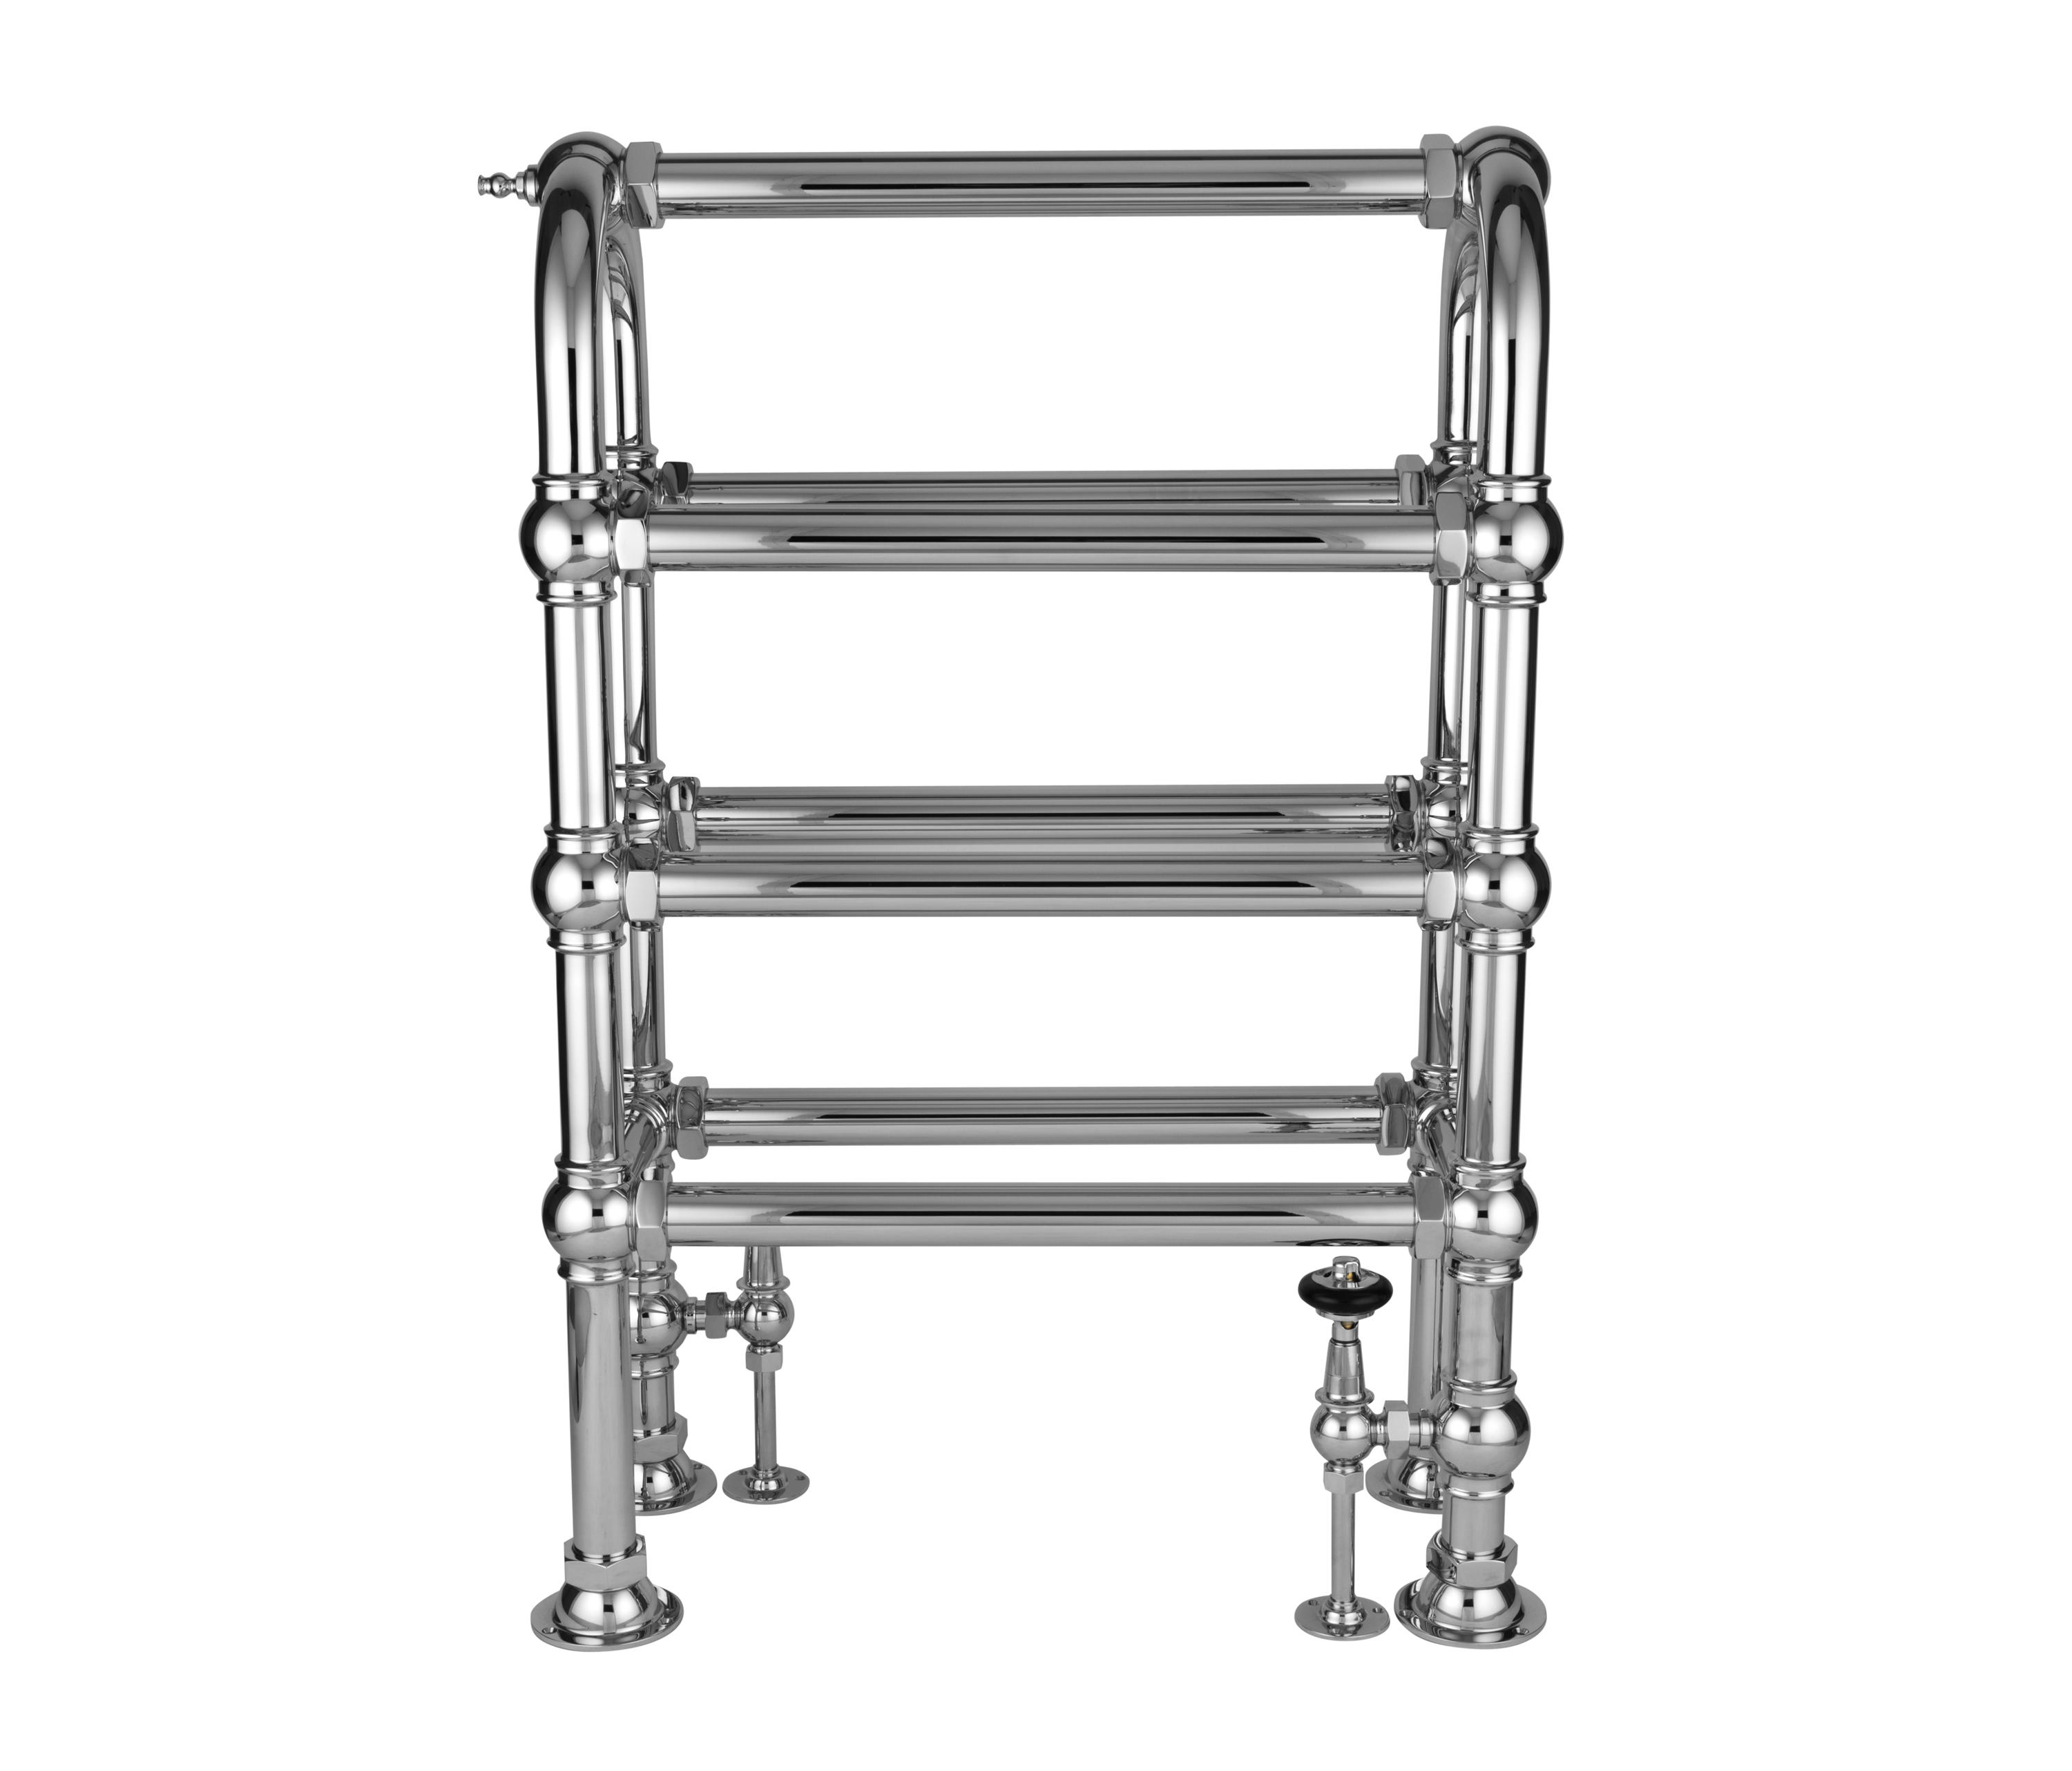 Free standing towel warmer Bronze Freestanding Towel Rail By Drummonds Radiators Architonic Freestanding Towel Rail Radiators From Drummonds Architonic